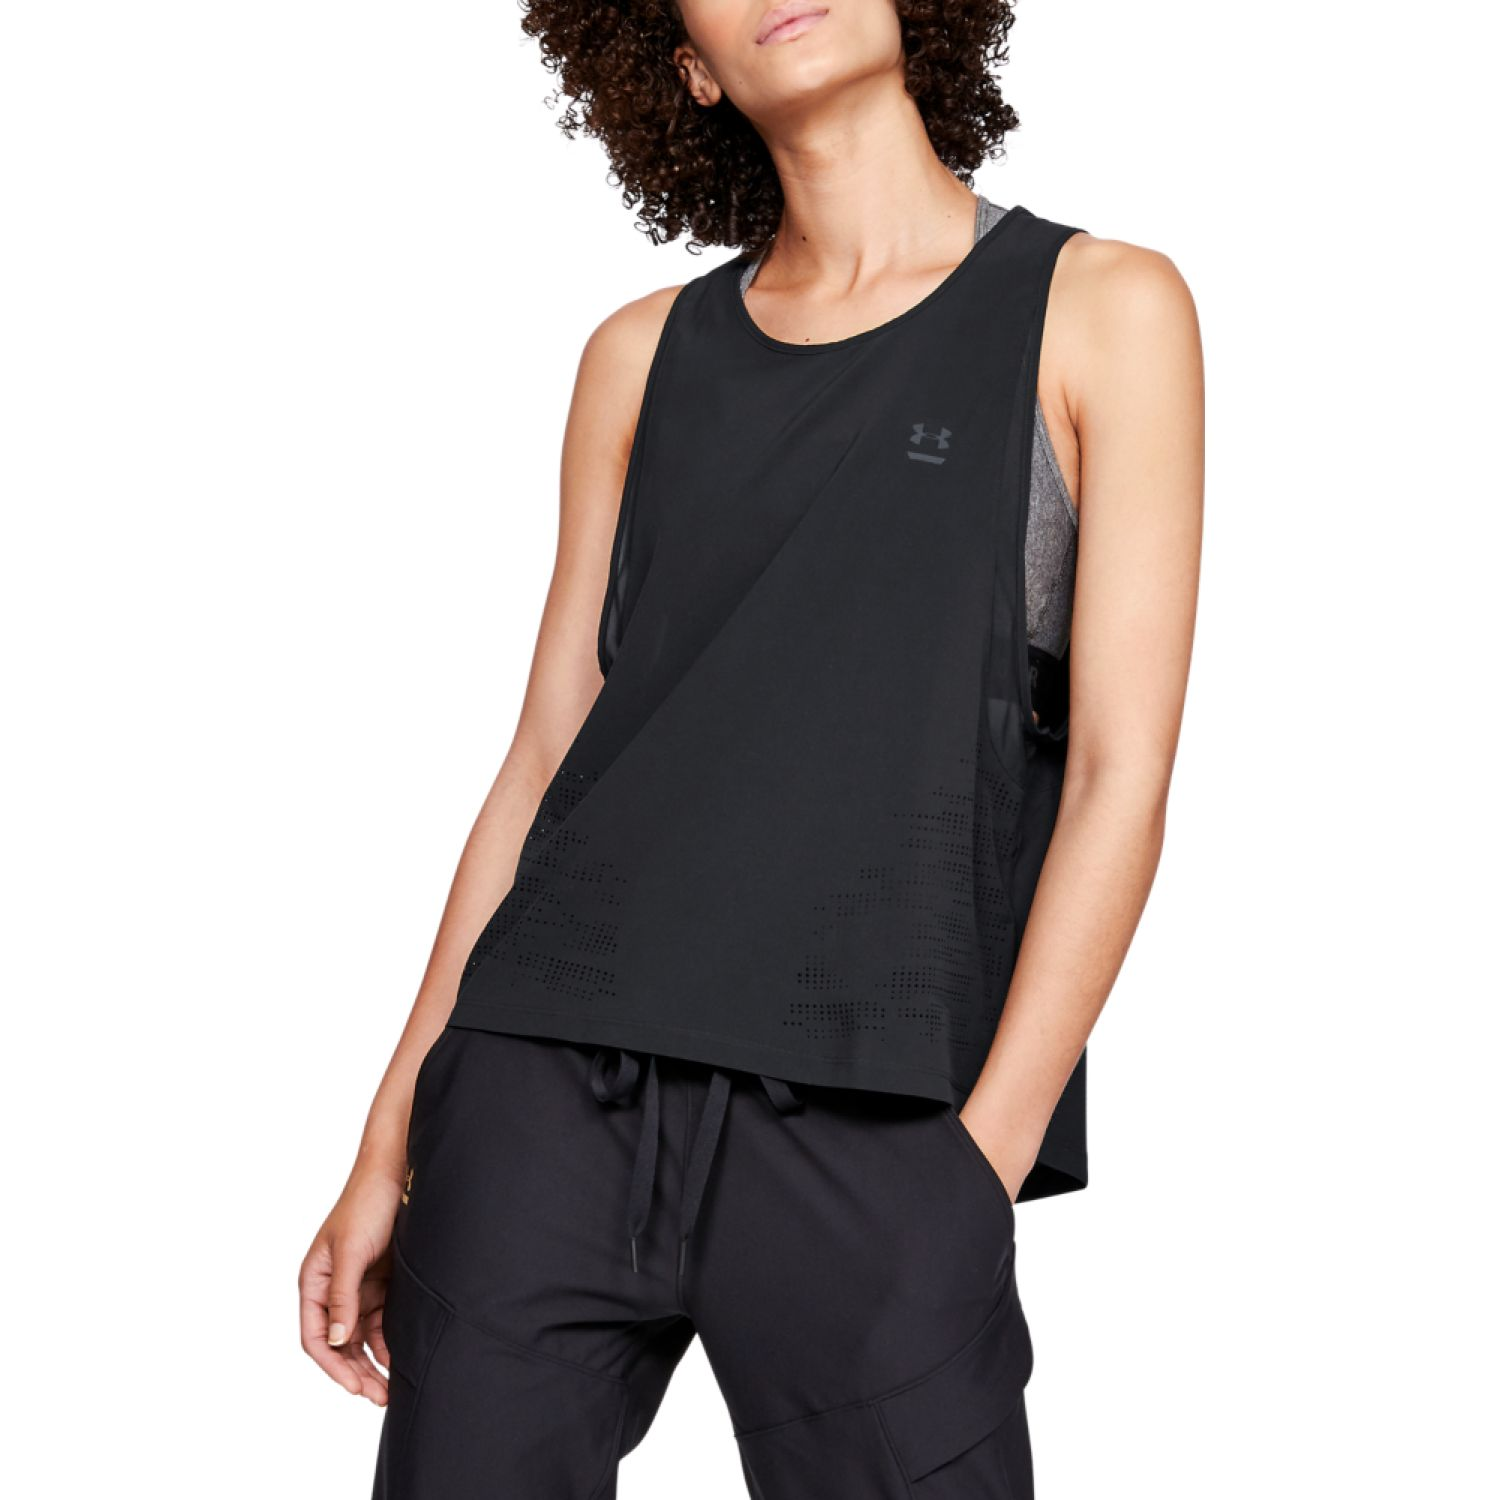 Under Armour perpetual woven tank-blk Negro Tank Tops